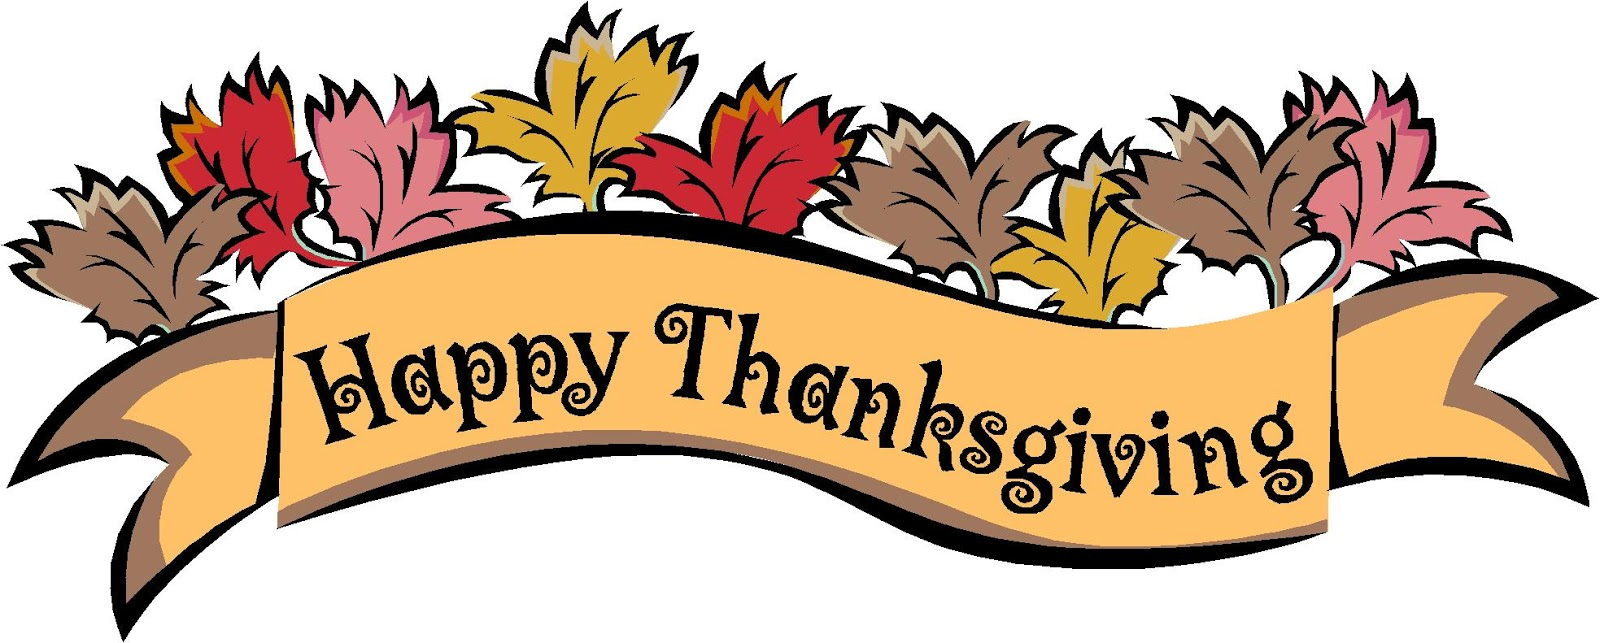 happy thanksgiving clipart at getdrawings com free for personal rh getdrawings com happy thanksgiving clip art borders happy thanksgiving clip art font